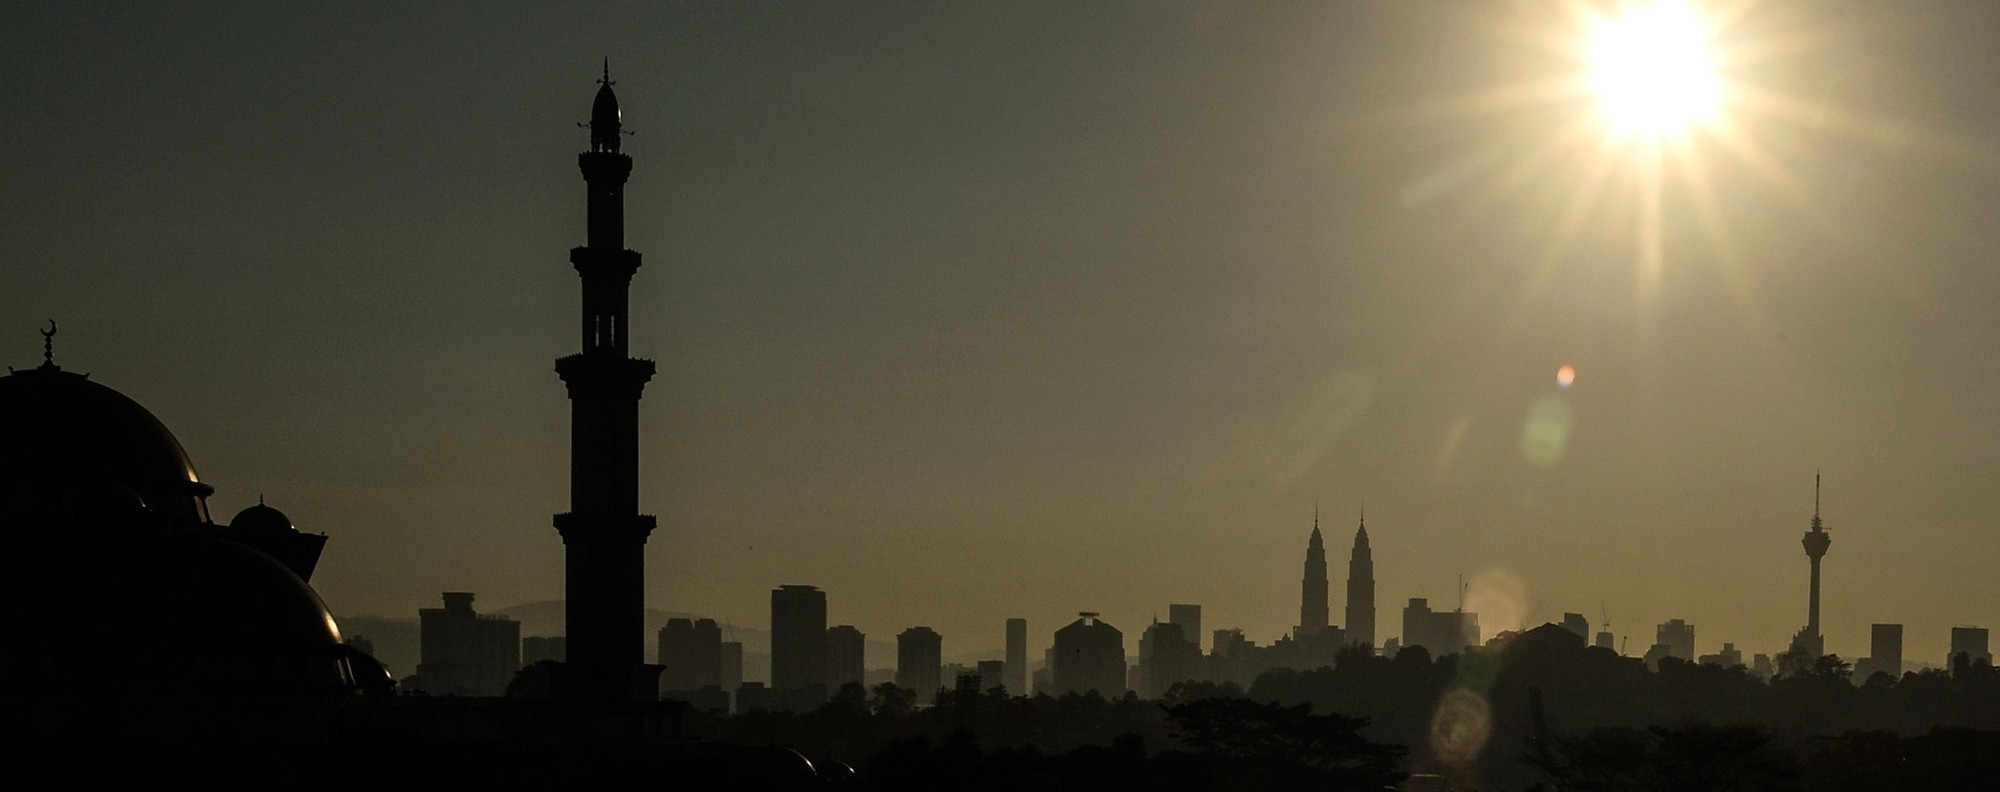 The Wilayah mosque in Kuala Lumpur. Photo: AFP